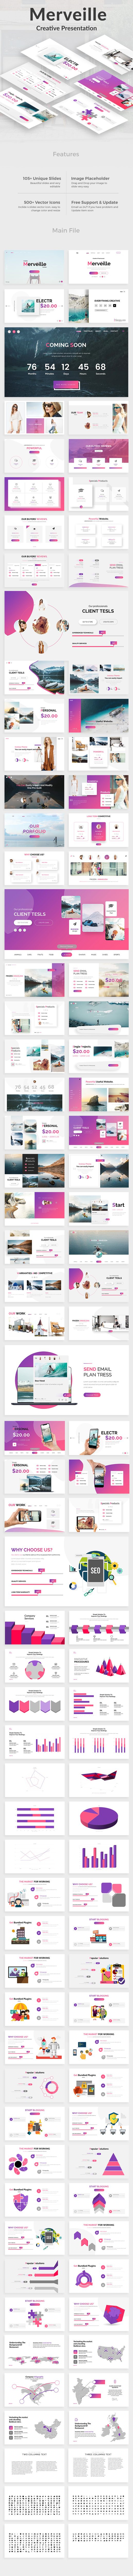 Merveille Creative Google Slide Template - Google Slides Presentation Templates